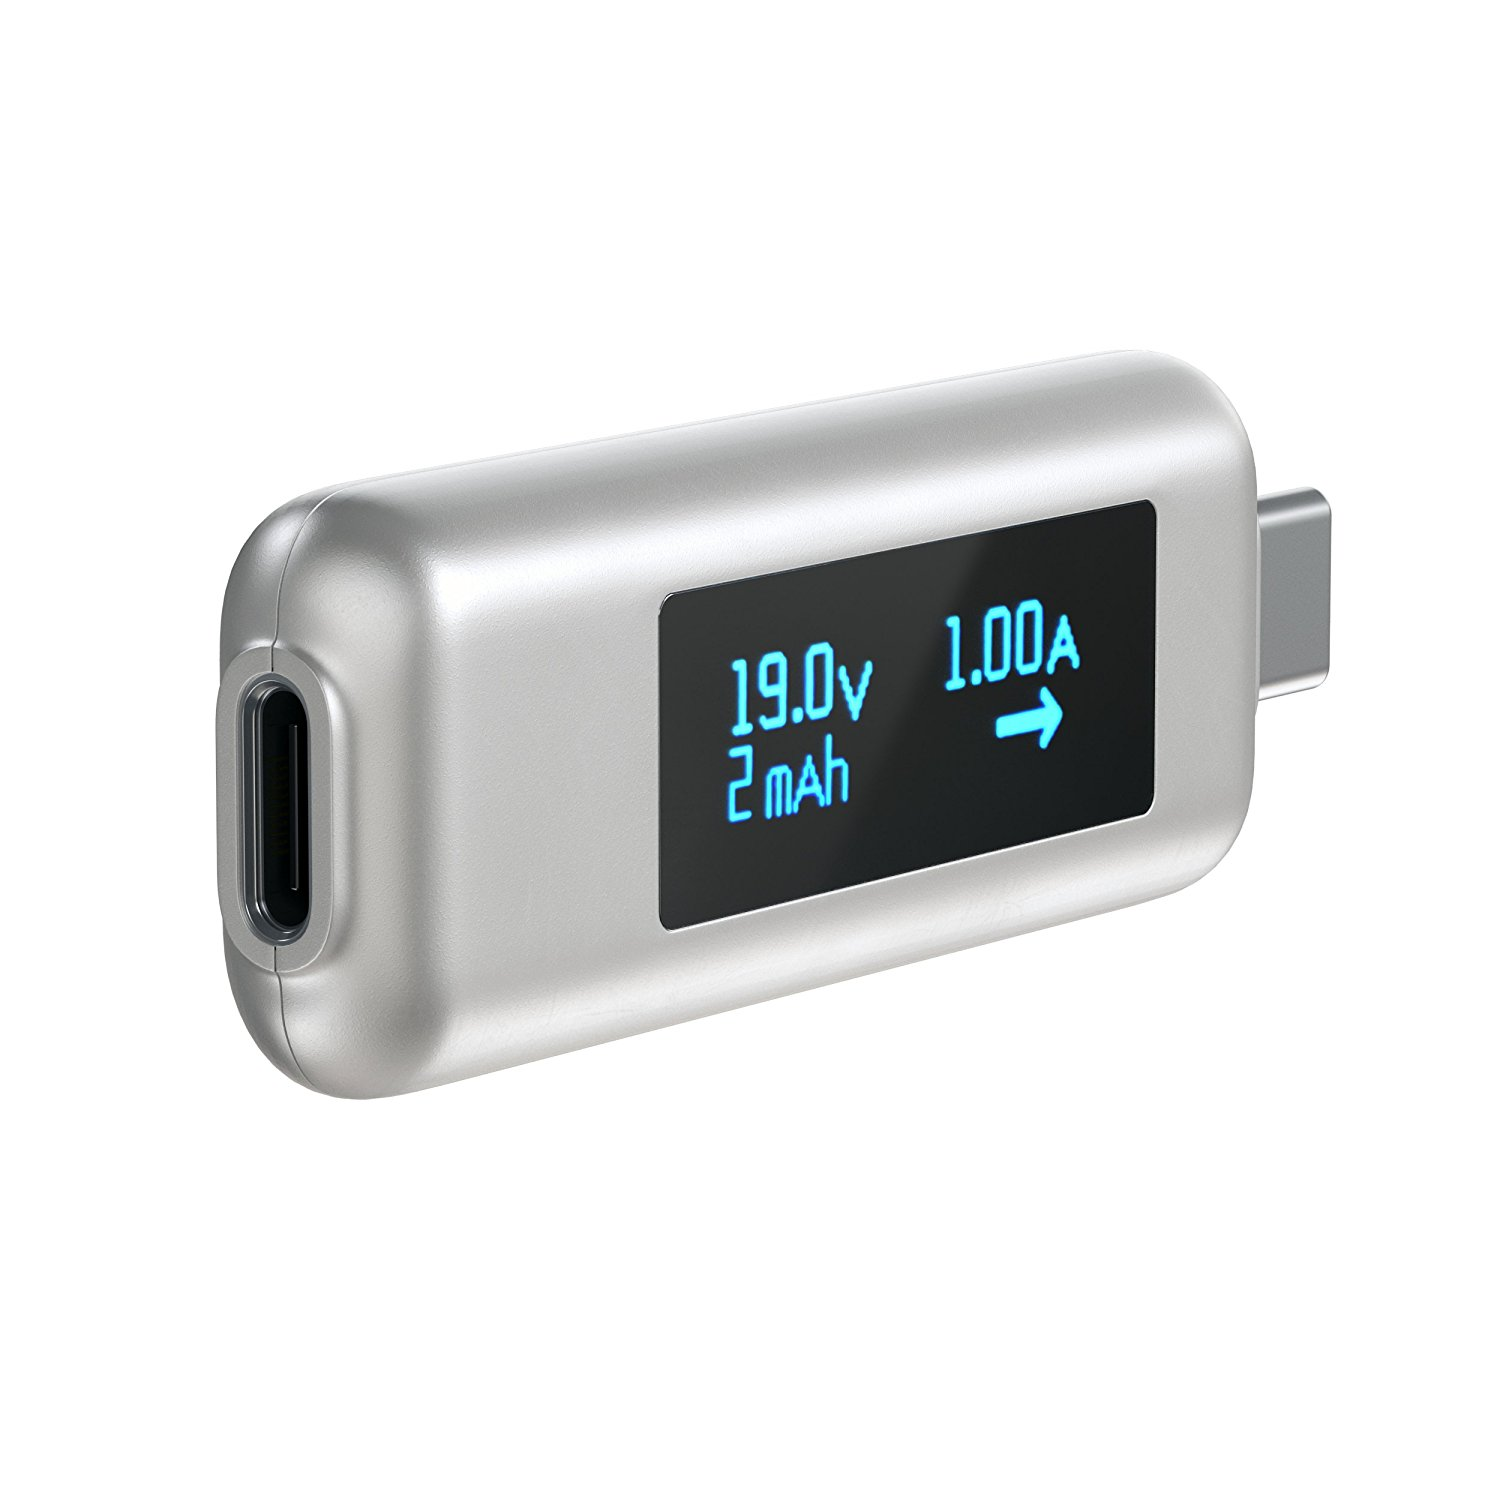 Satechi USB-C Power Meter - уред измерване на ампеража, волтаж и амперчасове за USB-C устройства